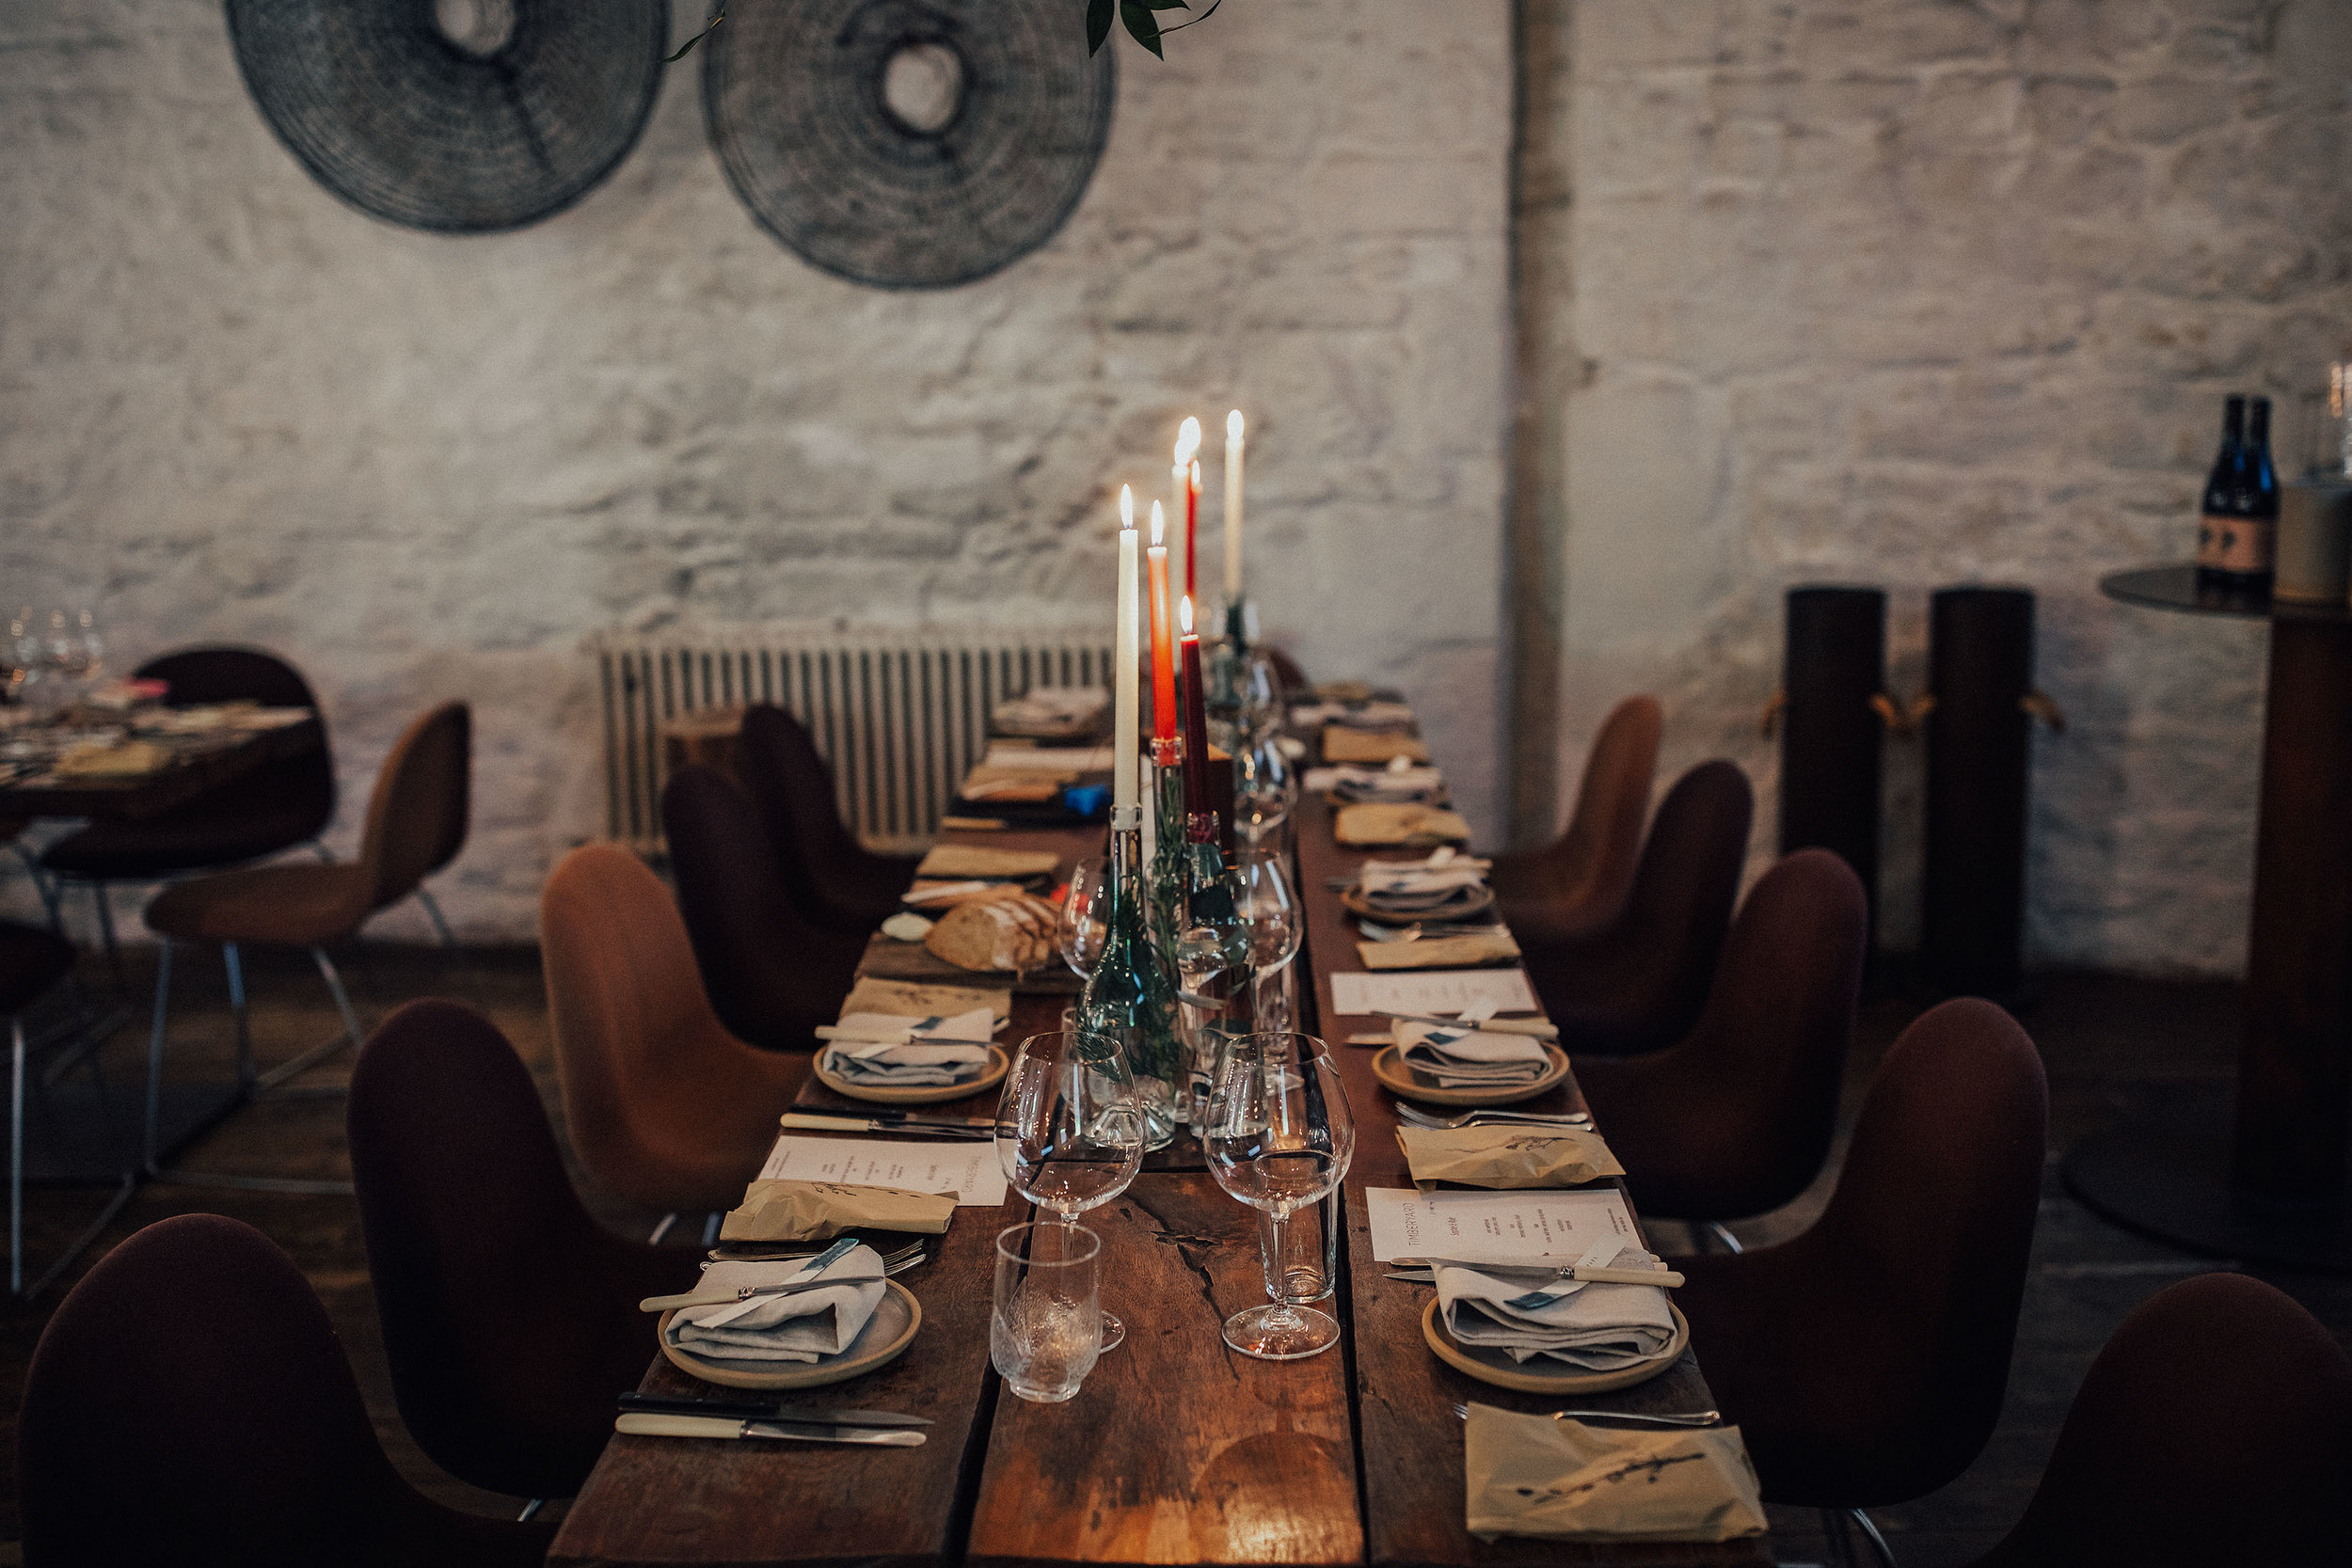 TIMBERYARD_EDINBURGH_WEDDING_PJ_PHILLIPS_PHOTOGRAPHY_162.jpg